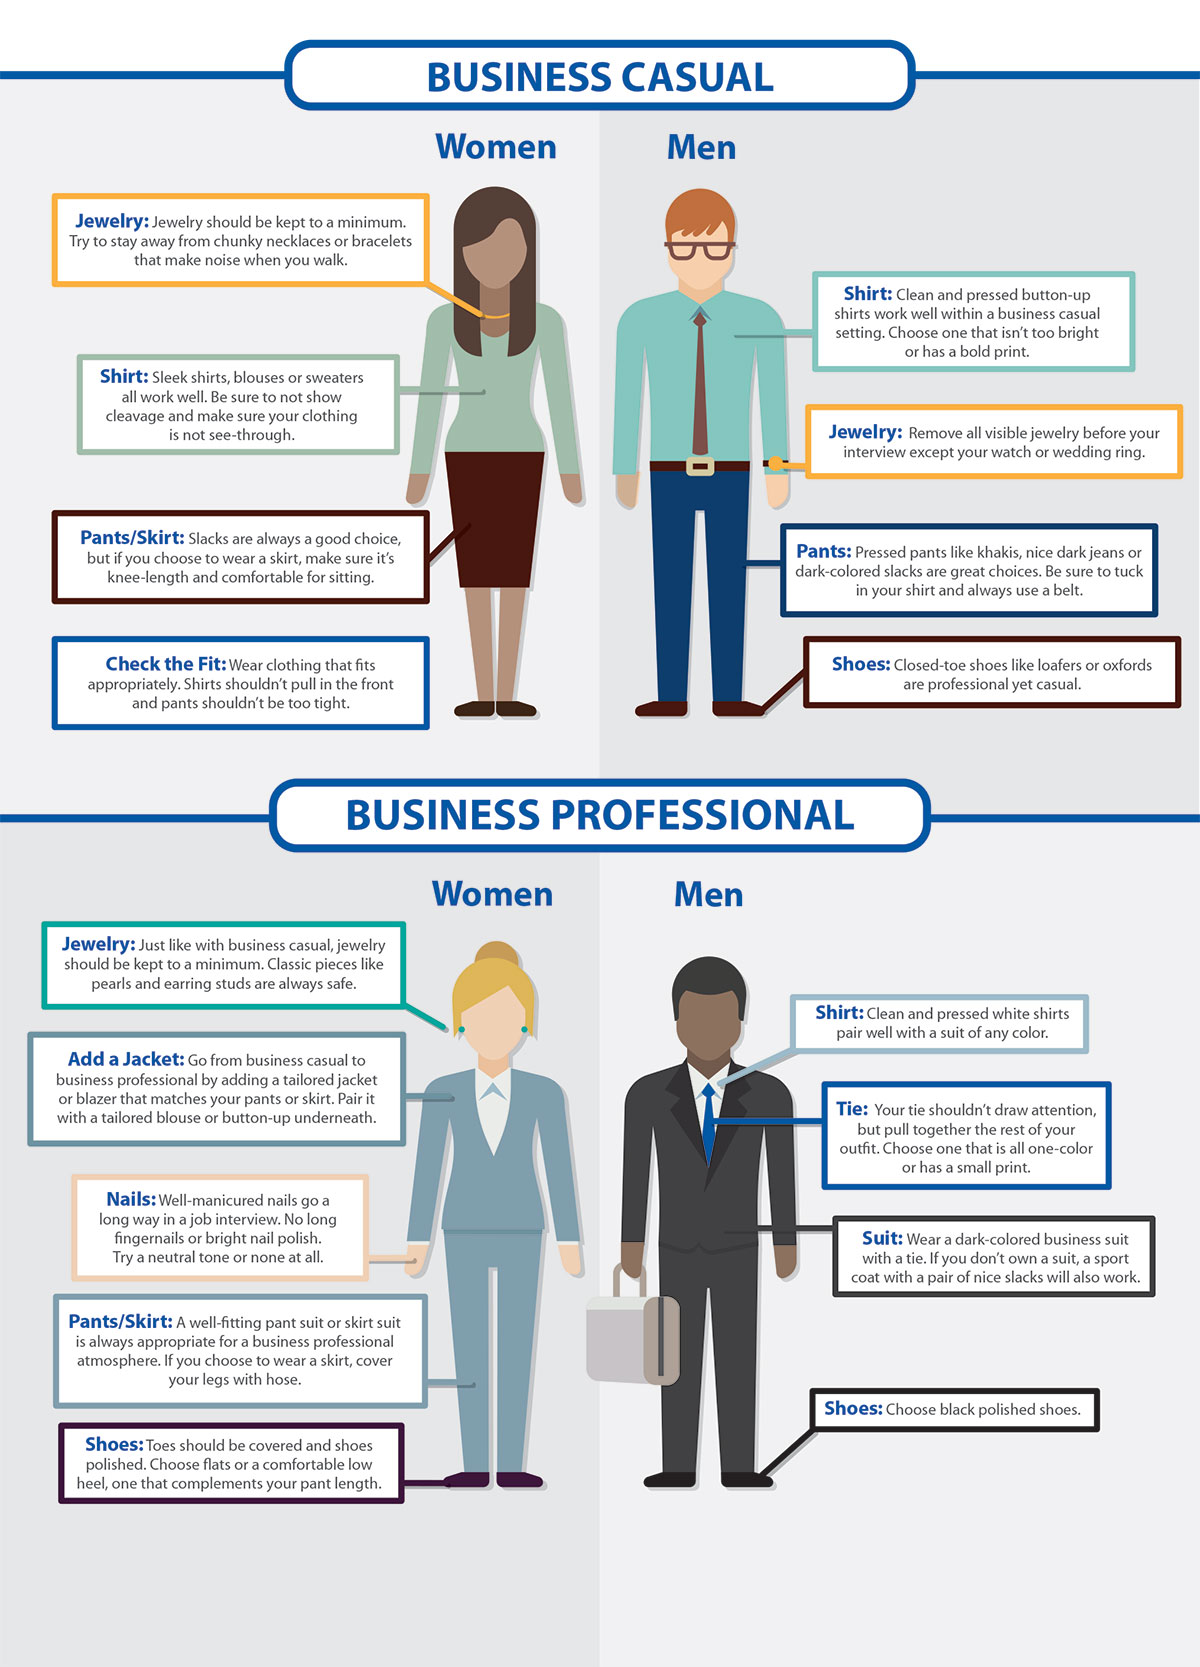 What's the Difference Between Business Casual and Business Professional